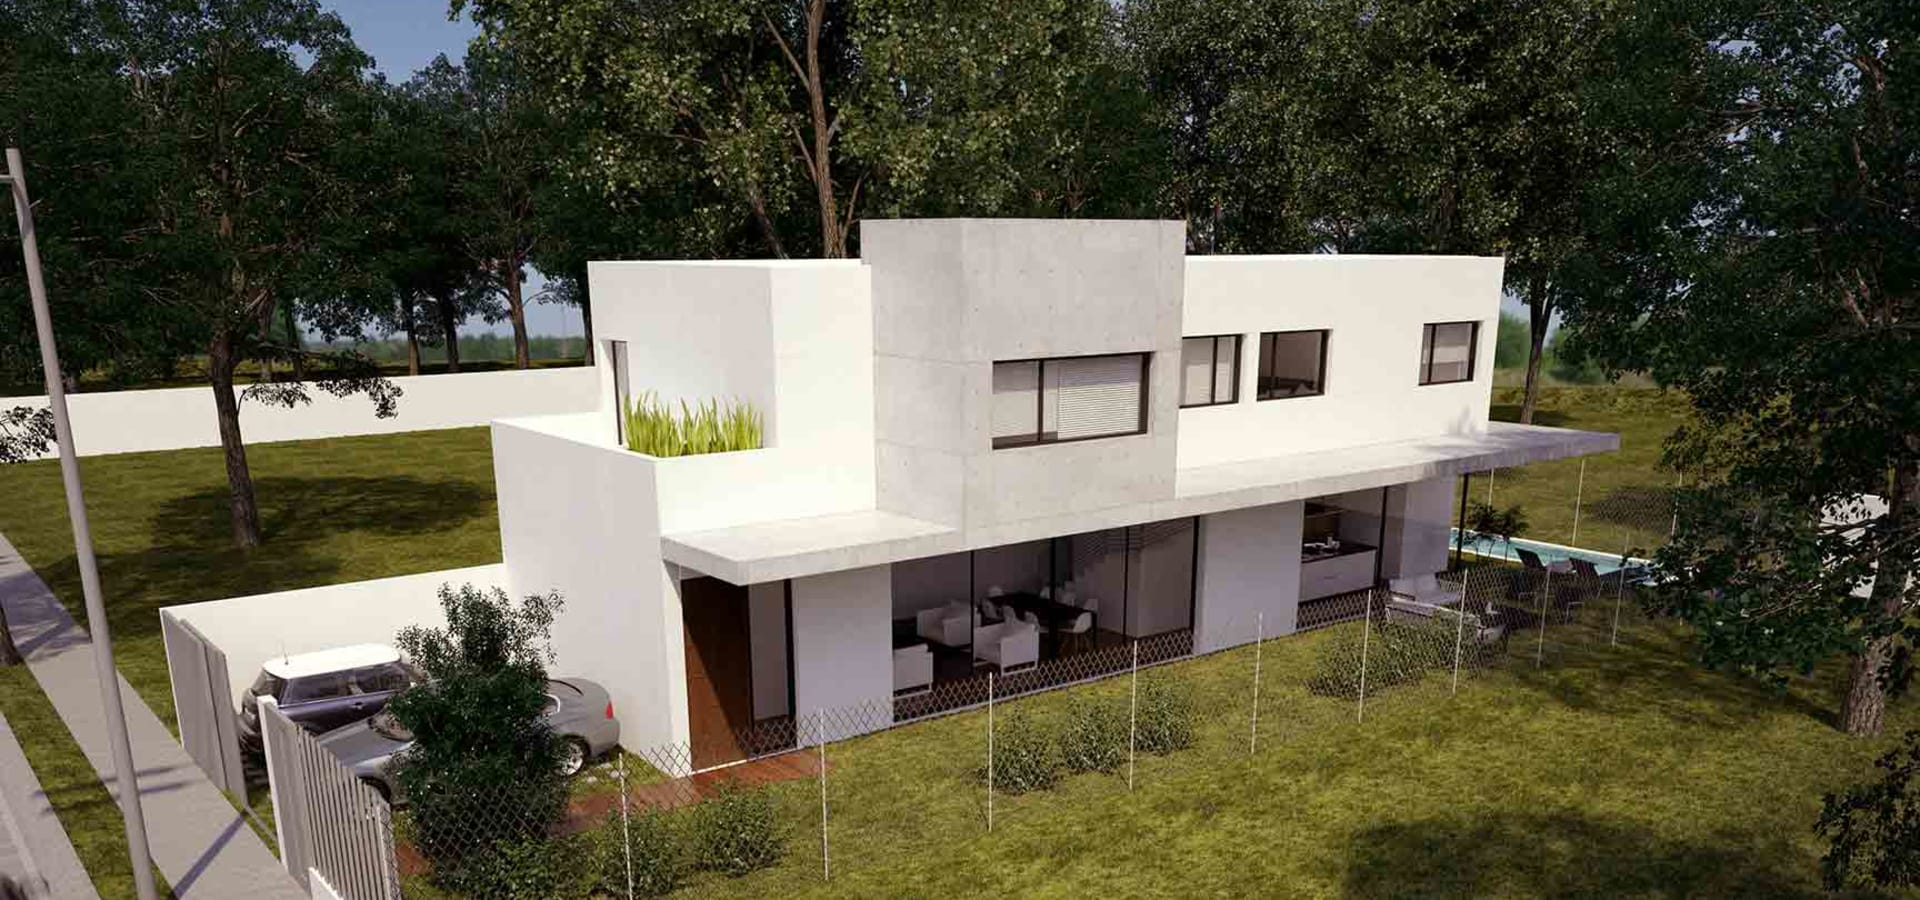 The Concrete Home